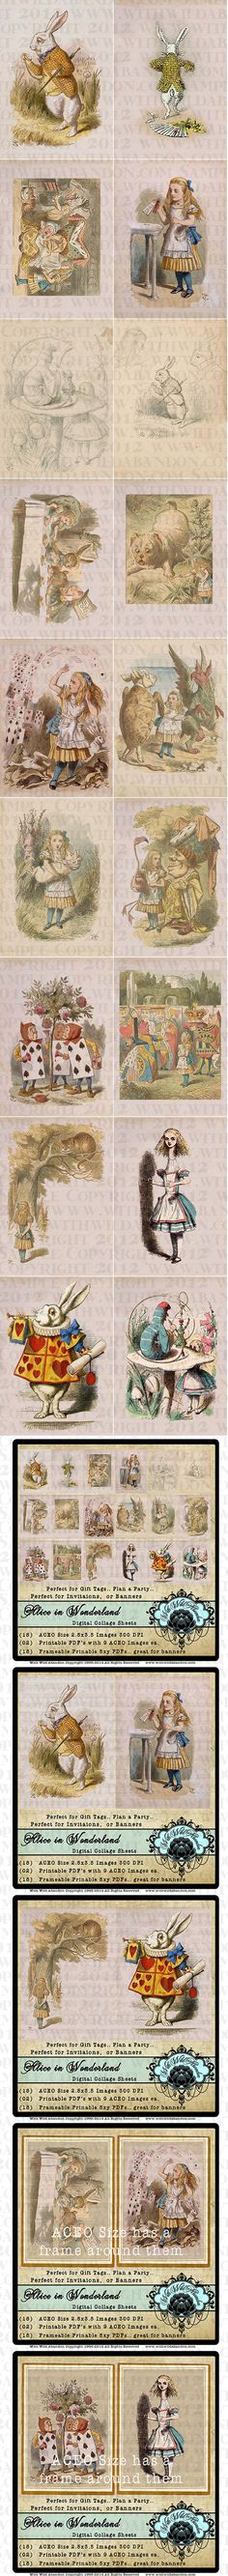 Color Illustrations of Original John Tenniel 's drawings. Alice in Wonderland, March Hare, White Rabbit, Mad Hatter, Cheshire Cat, Illustrations from John Tenniel, Printable Tags, Frameable Art These are the illustrations from the first printing of Alice in Wonderland by John Tenniel published in 1866. (2) Printable 8.5x11 Printable PDF of 9 Aged Alice in Wonderland Tags (total 1 8 tags) (18) Printable 5x7 Images suitable for framing or for banners (18) jpegs of the ACEO or ATC Size Tags